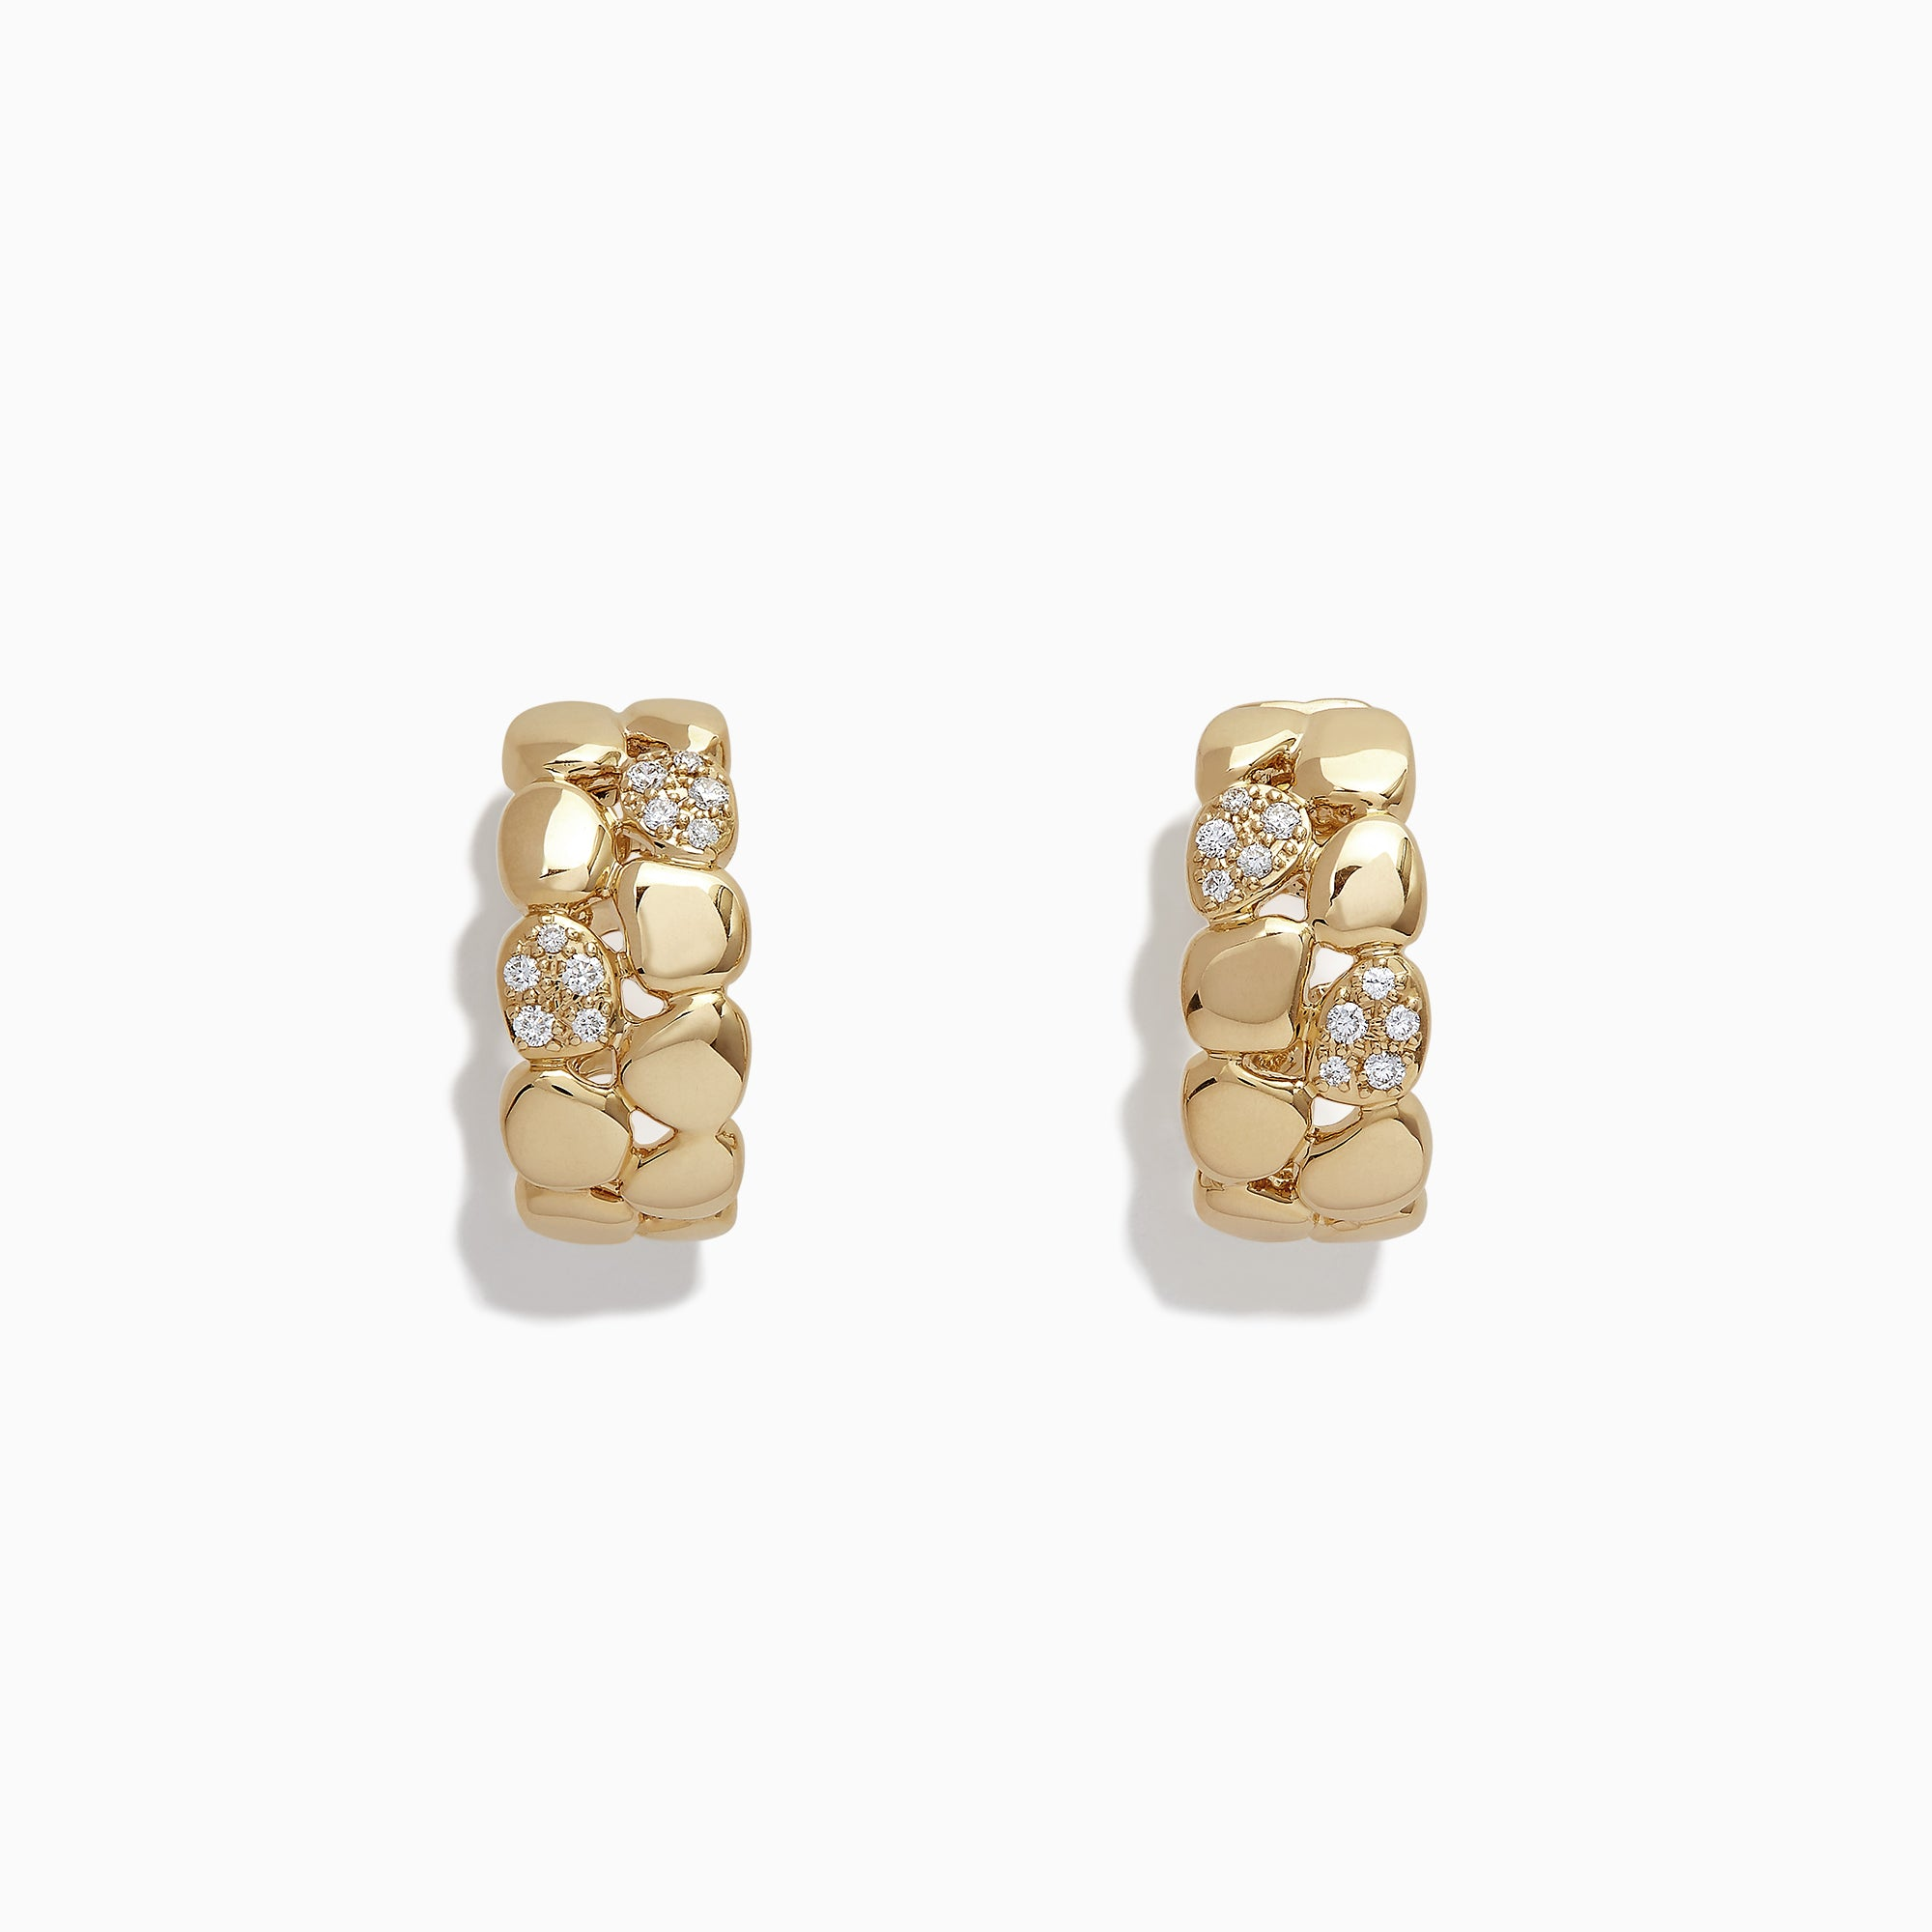 Effy D'Oro 14K Yellow Gold Diamond Earrings, 0.17 TCW